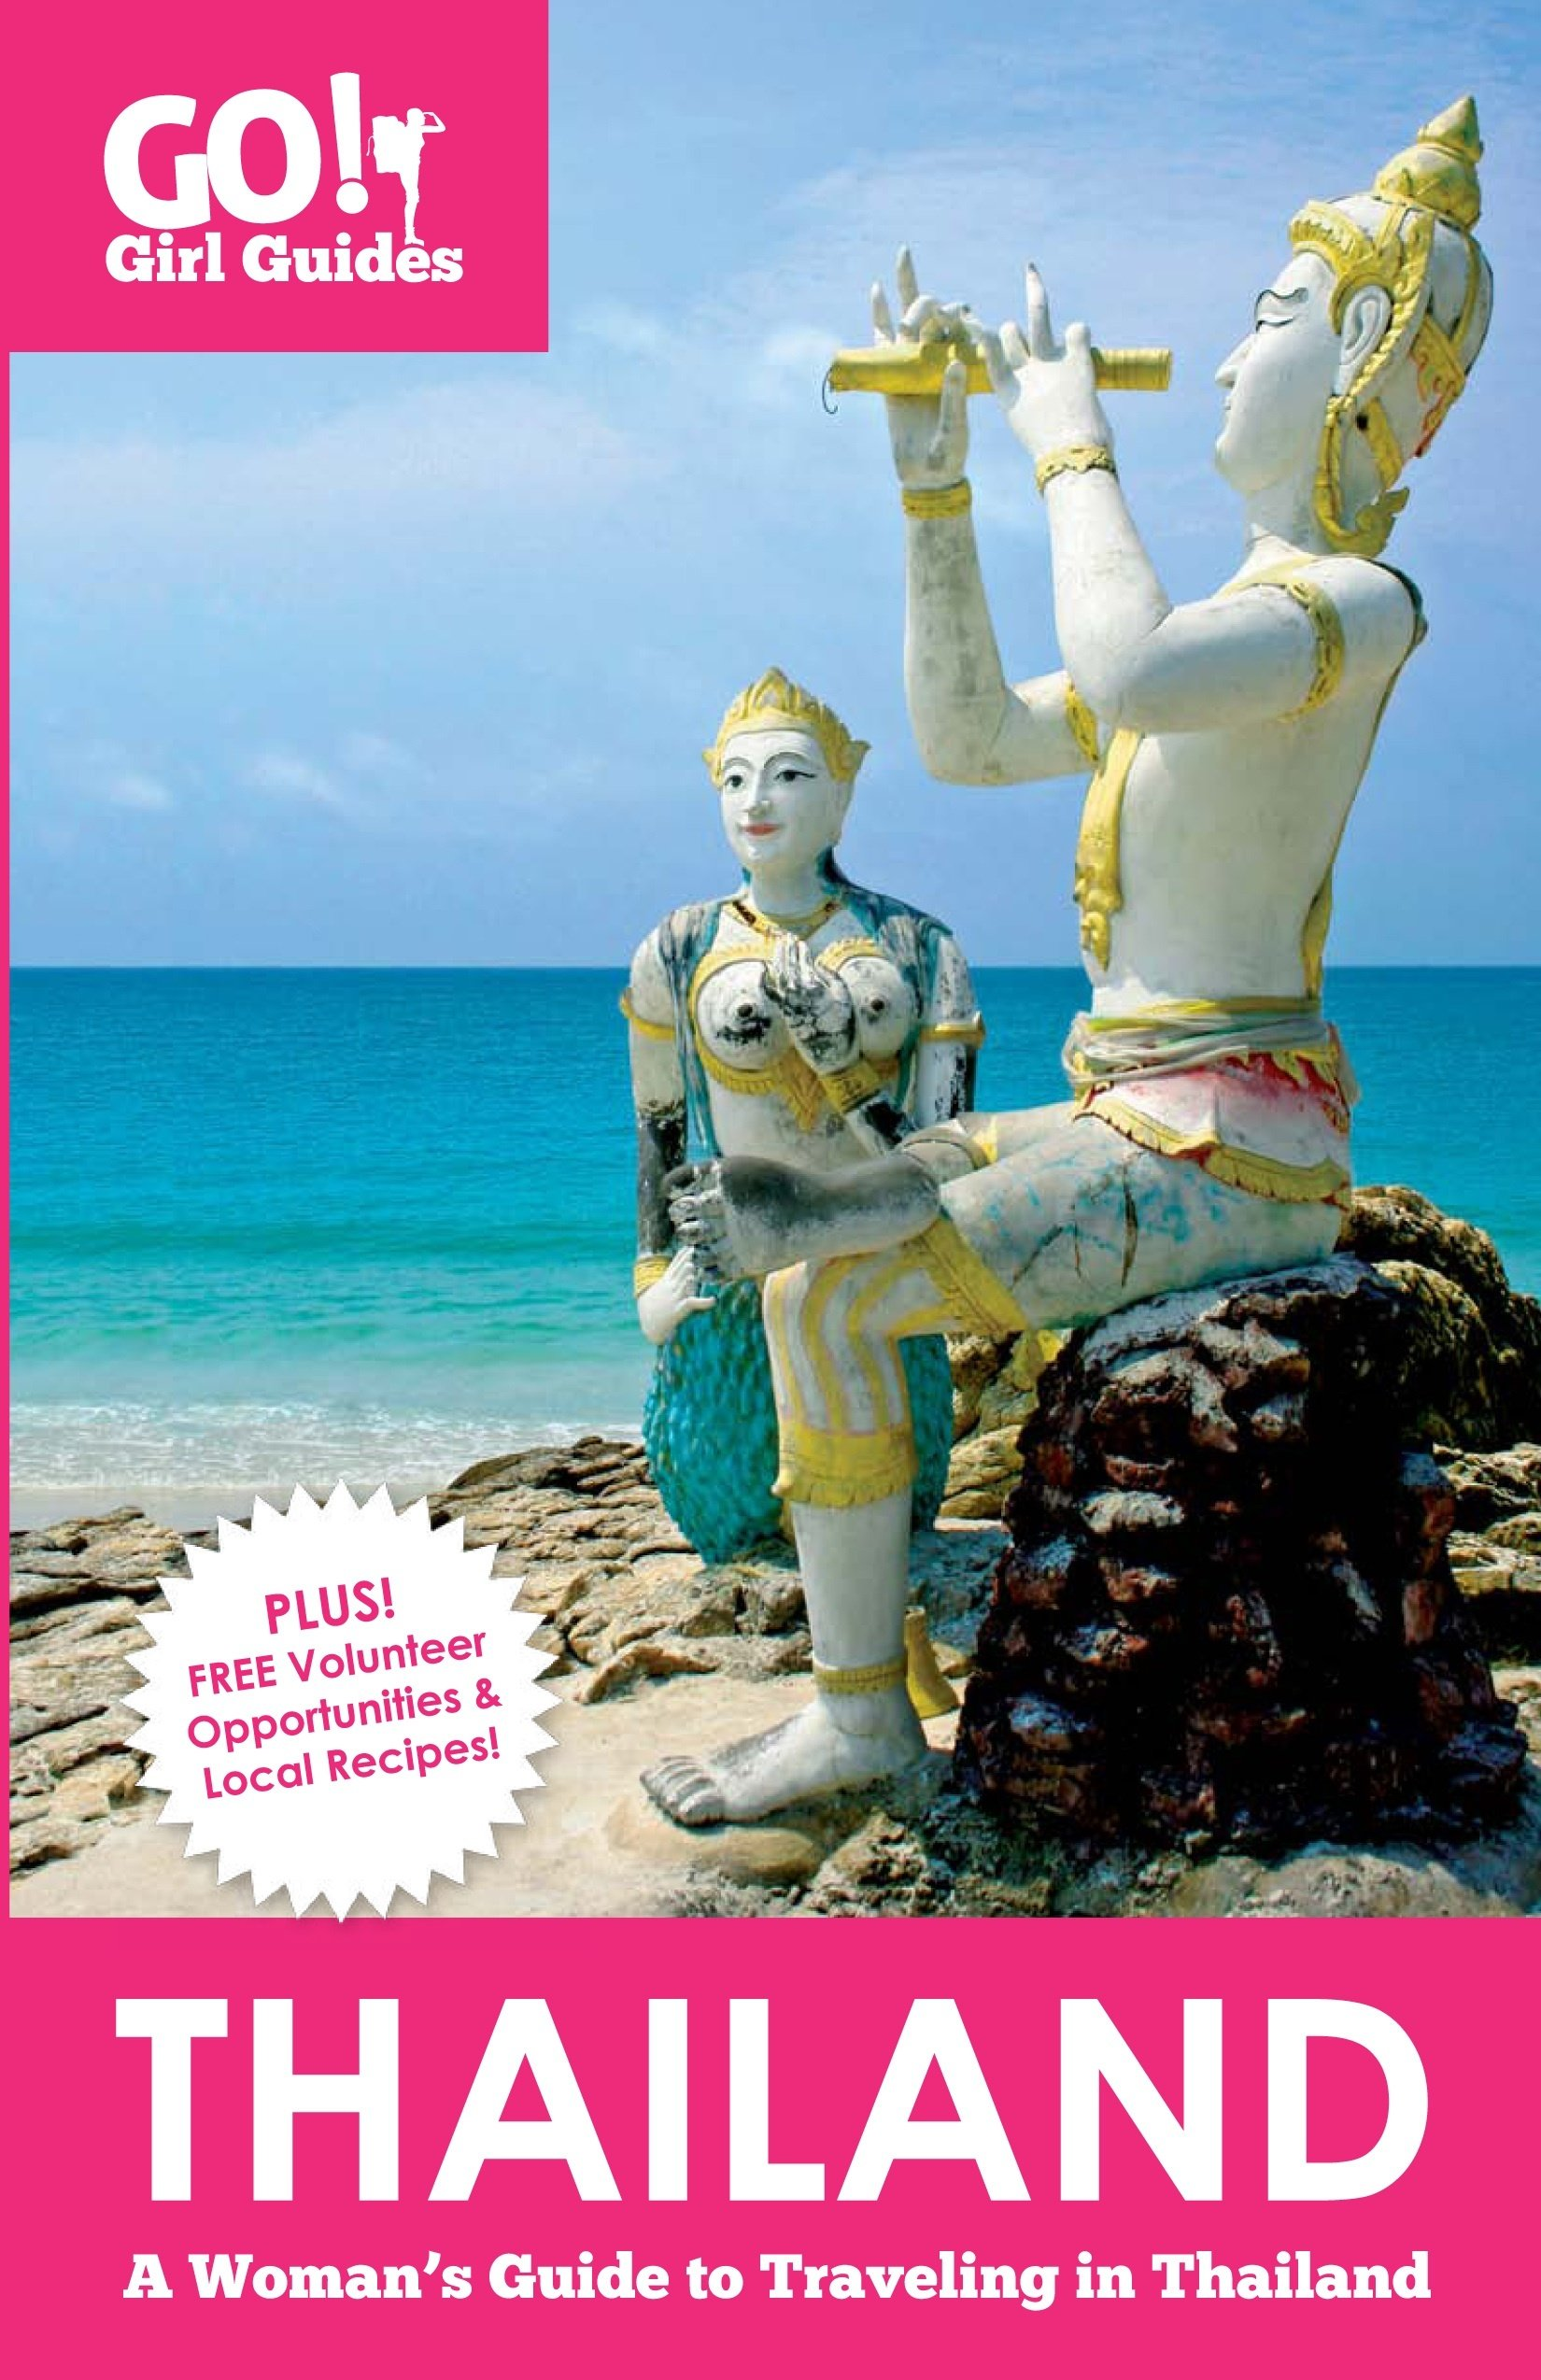 Thailand: A Woman's Guide to Traveling Solo in Thailand 00005